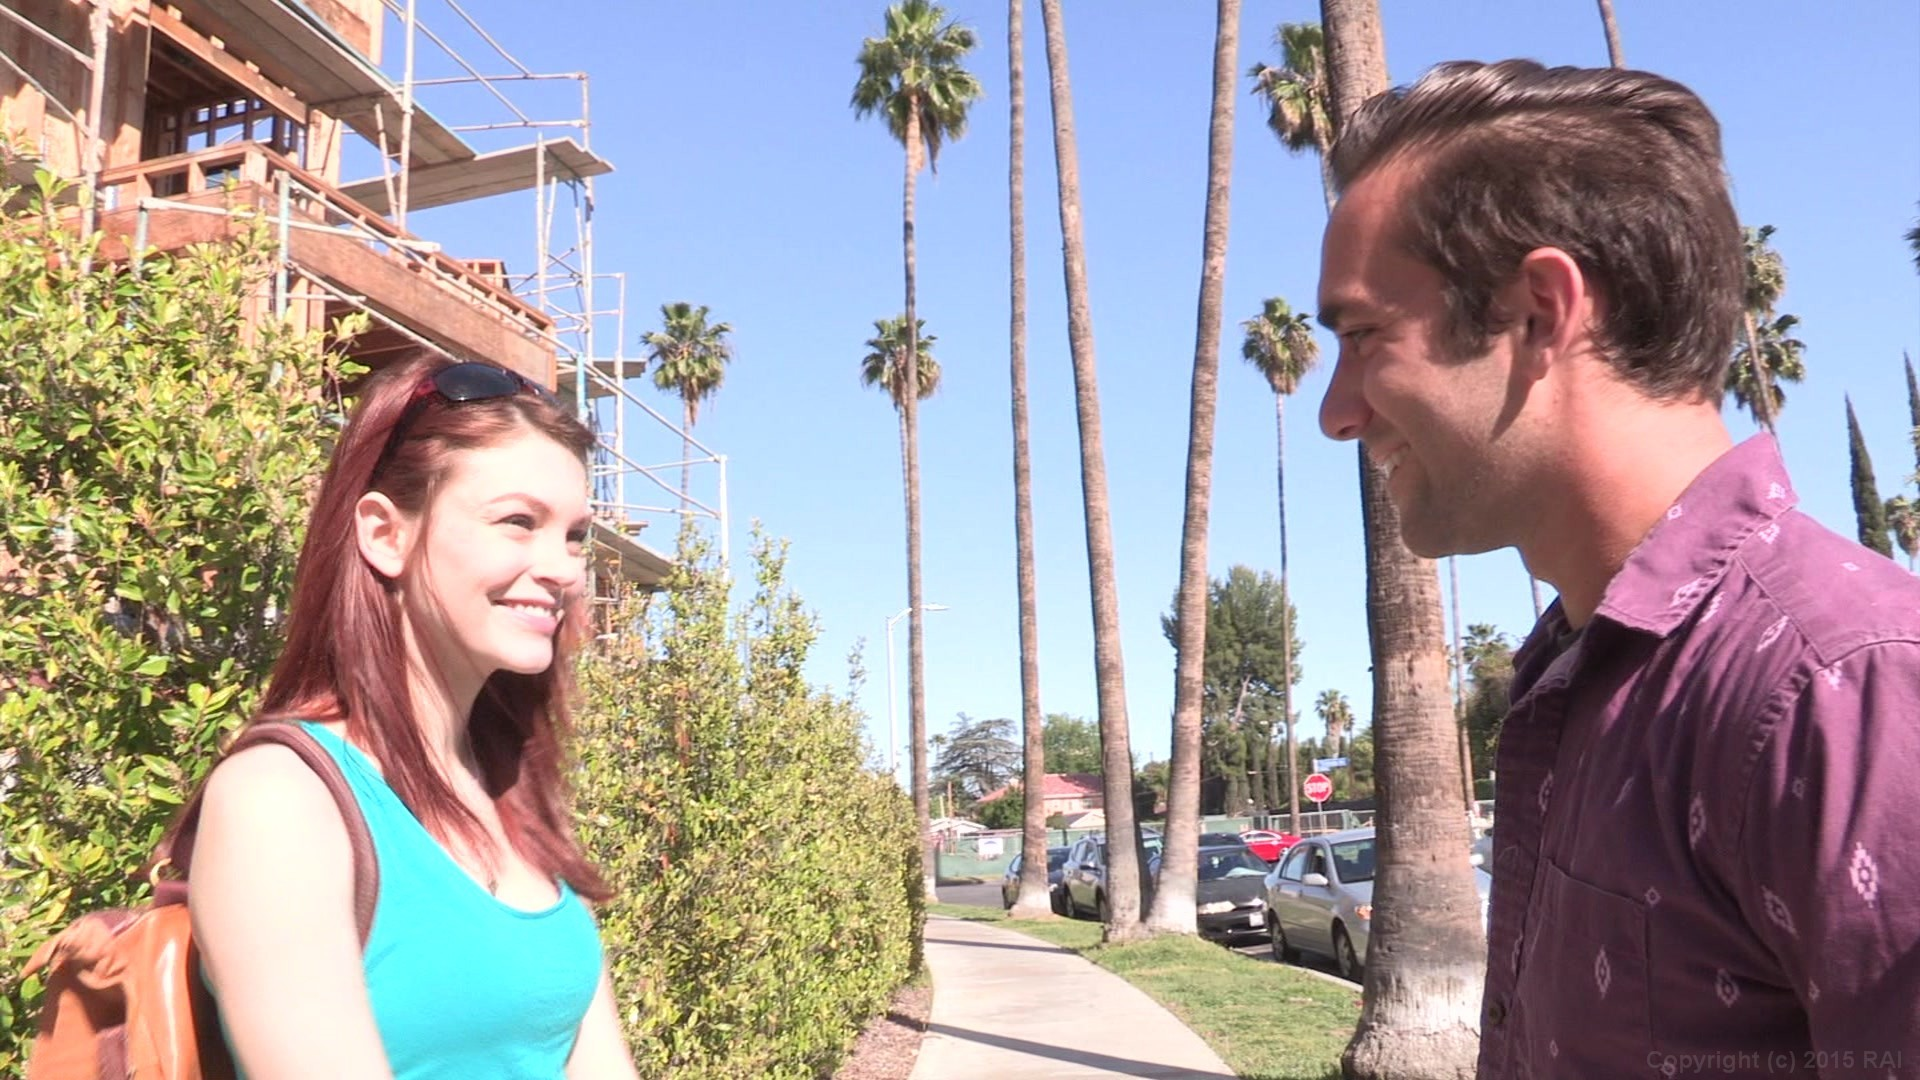 Scene with Bree Daniels and Logan Pierce - image 10 out of 20